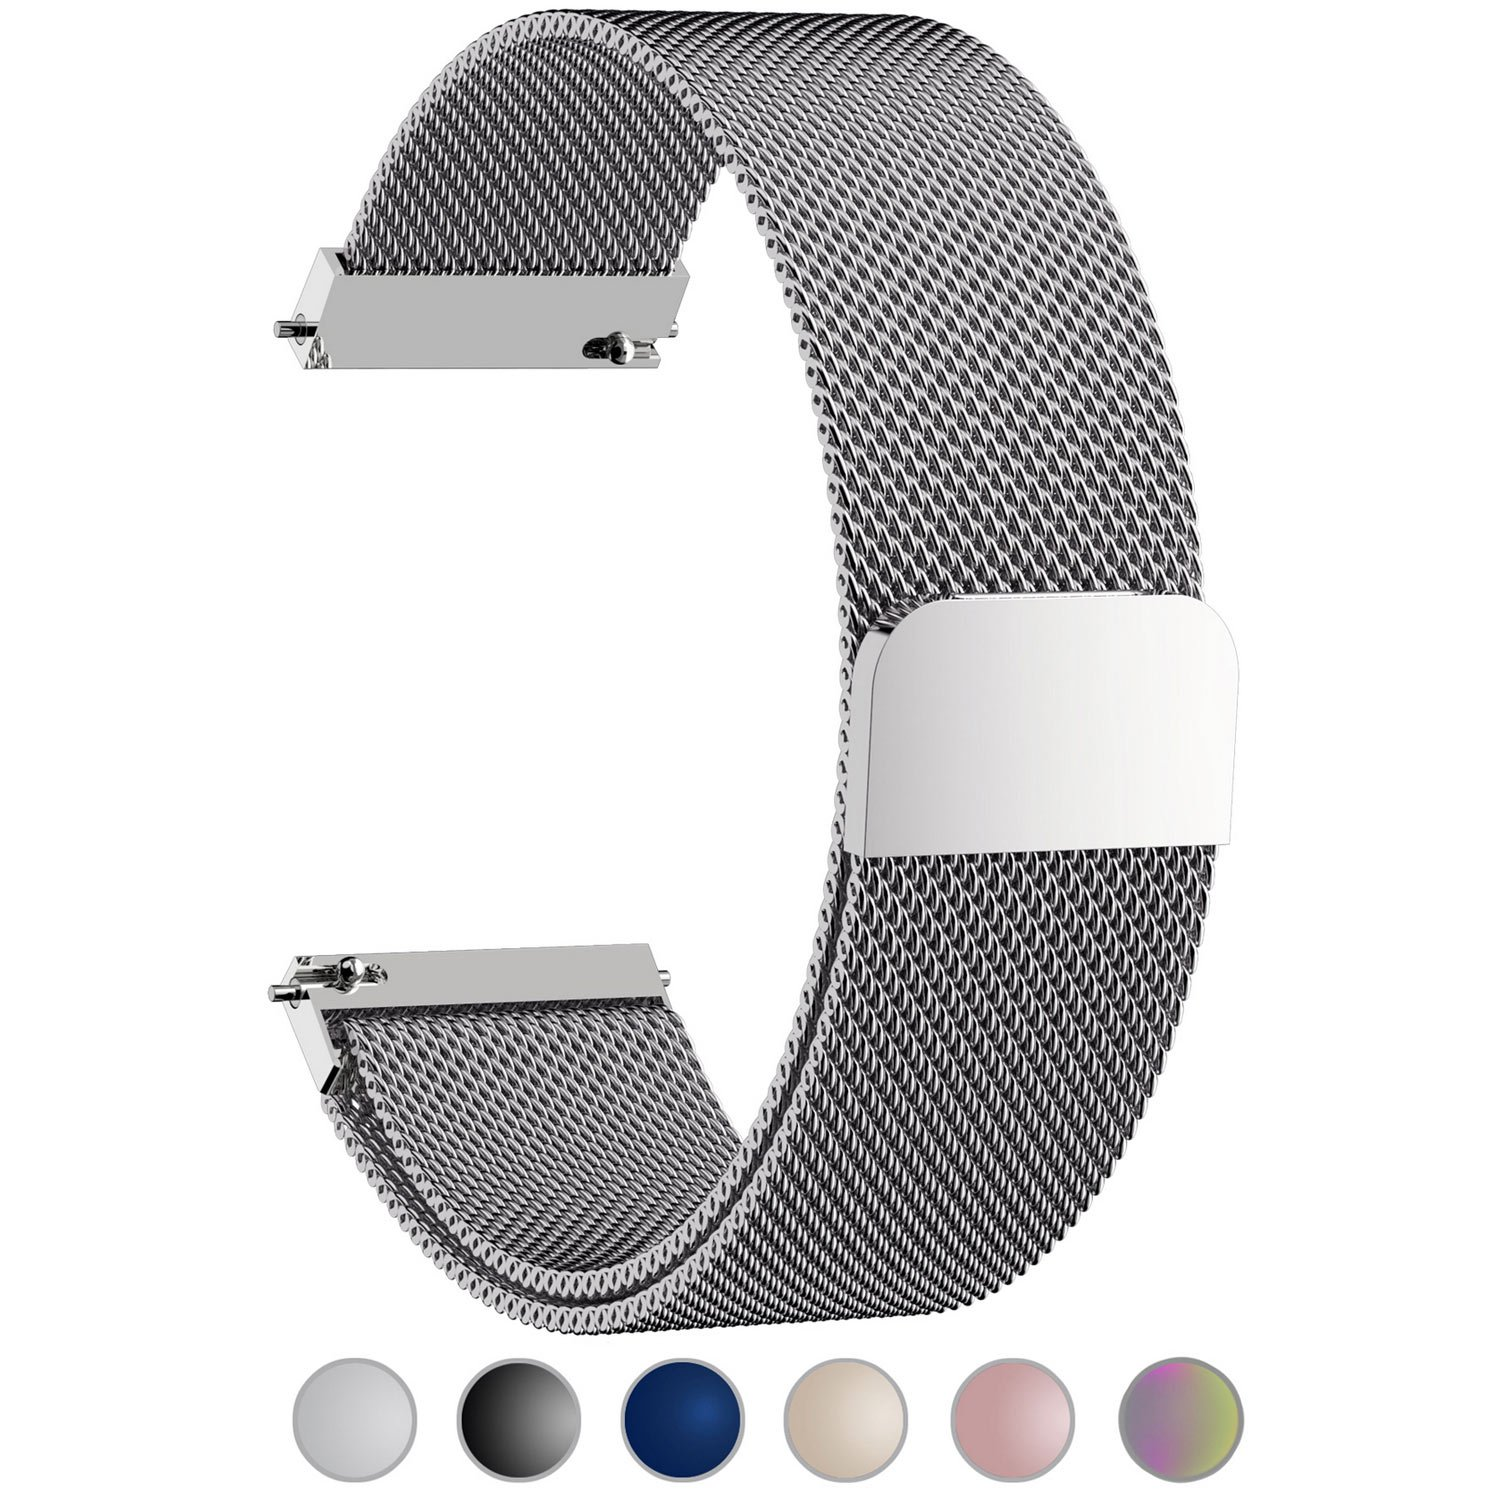 6 Colors for Huawei Watch Band, Fullmosa 18mm Watch Strap Quick Release Pins for Asus Zenwatch 2/LG Watch Style/Withings Activité/Steel HR 36mm Bracelet Milanese Watch Bands for Men Women, Silver